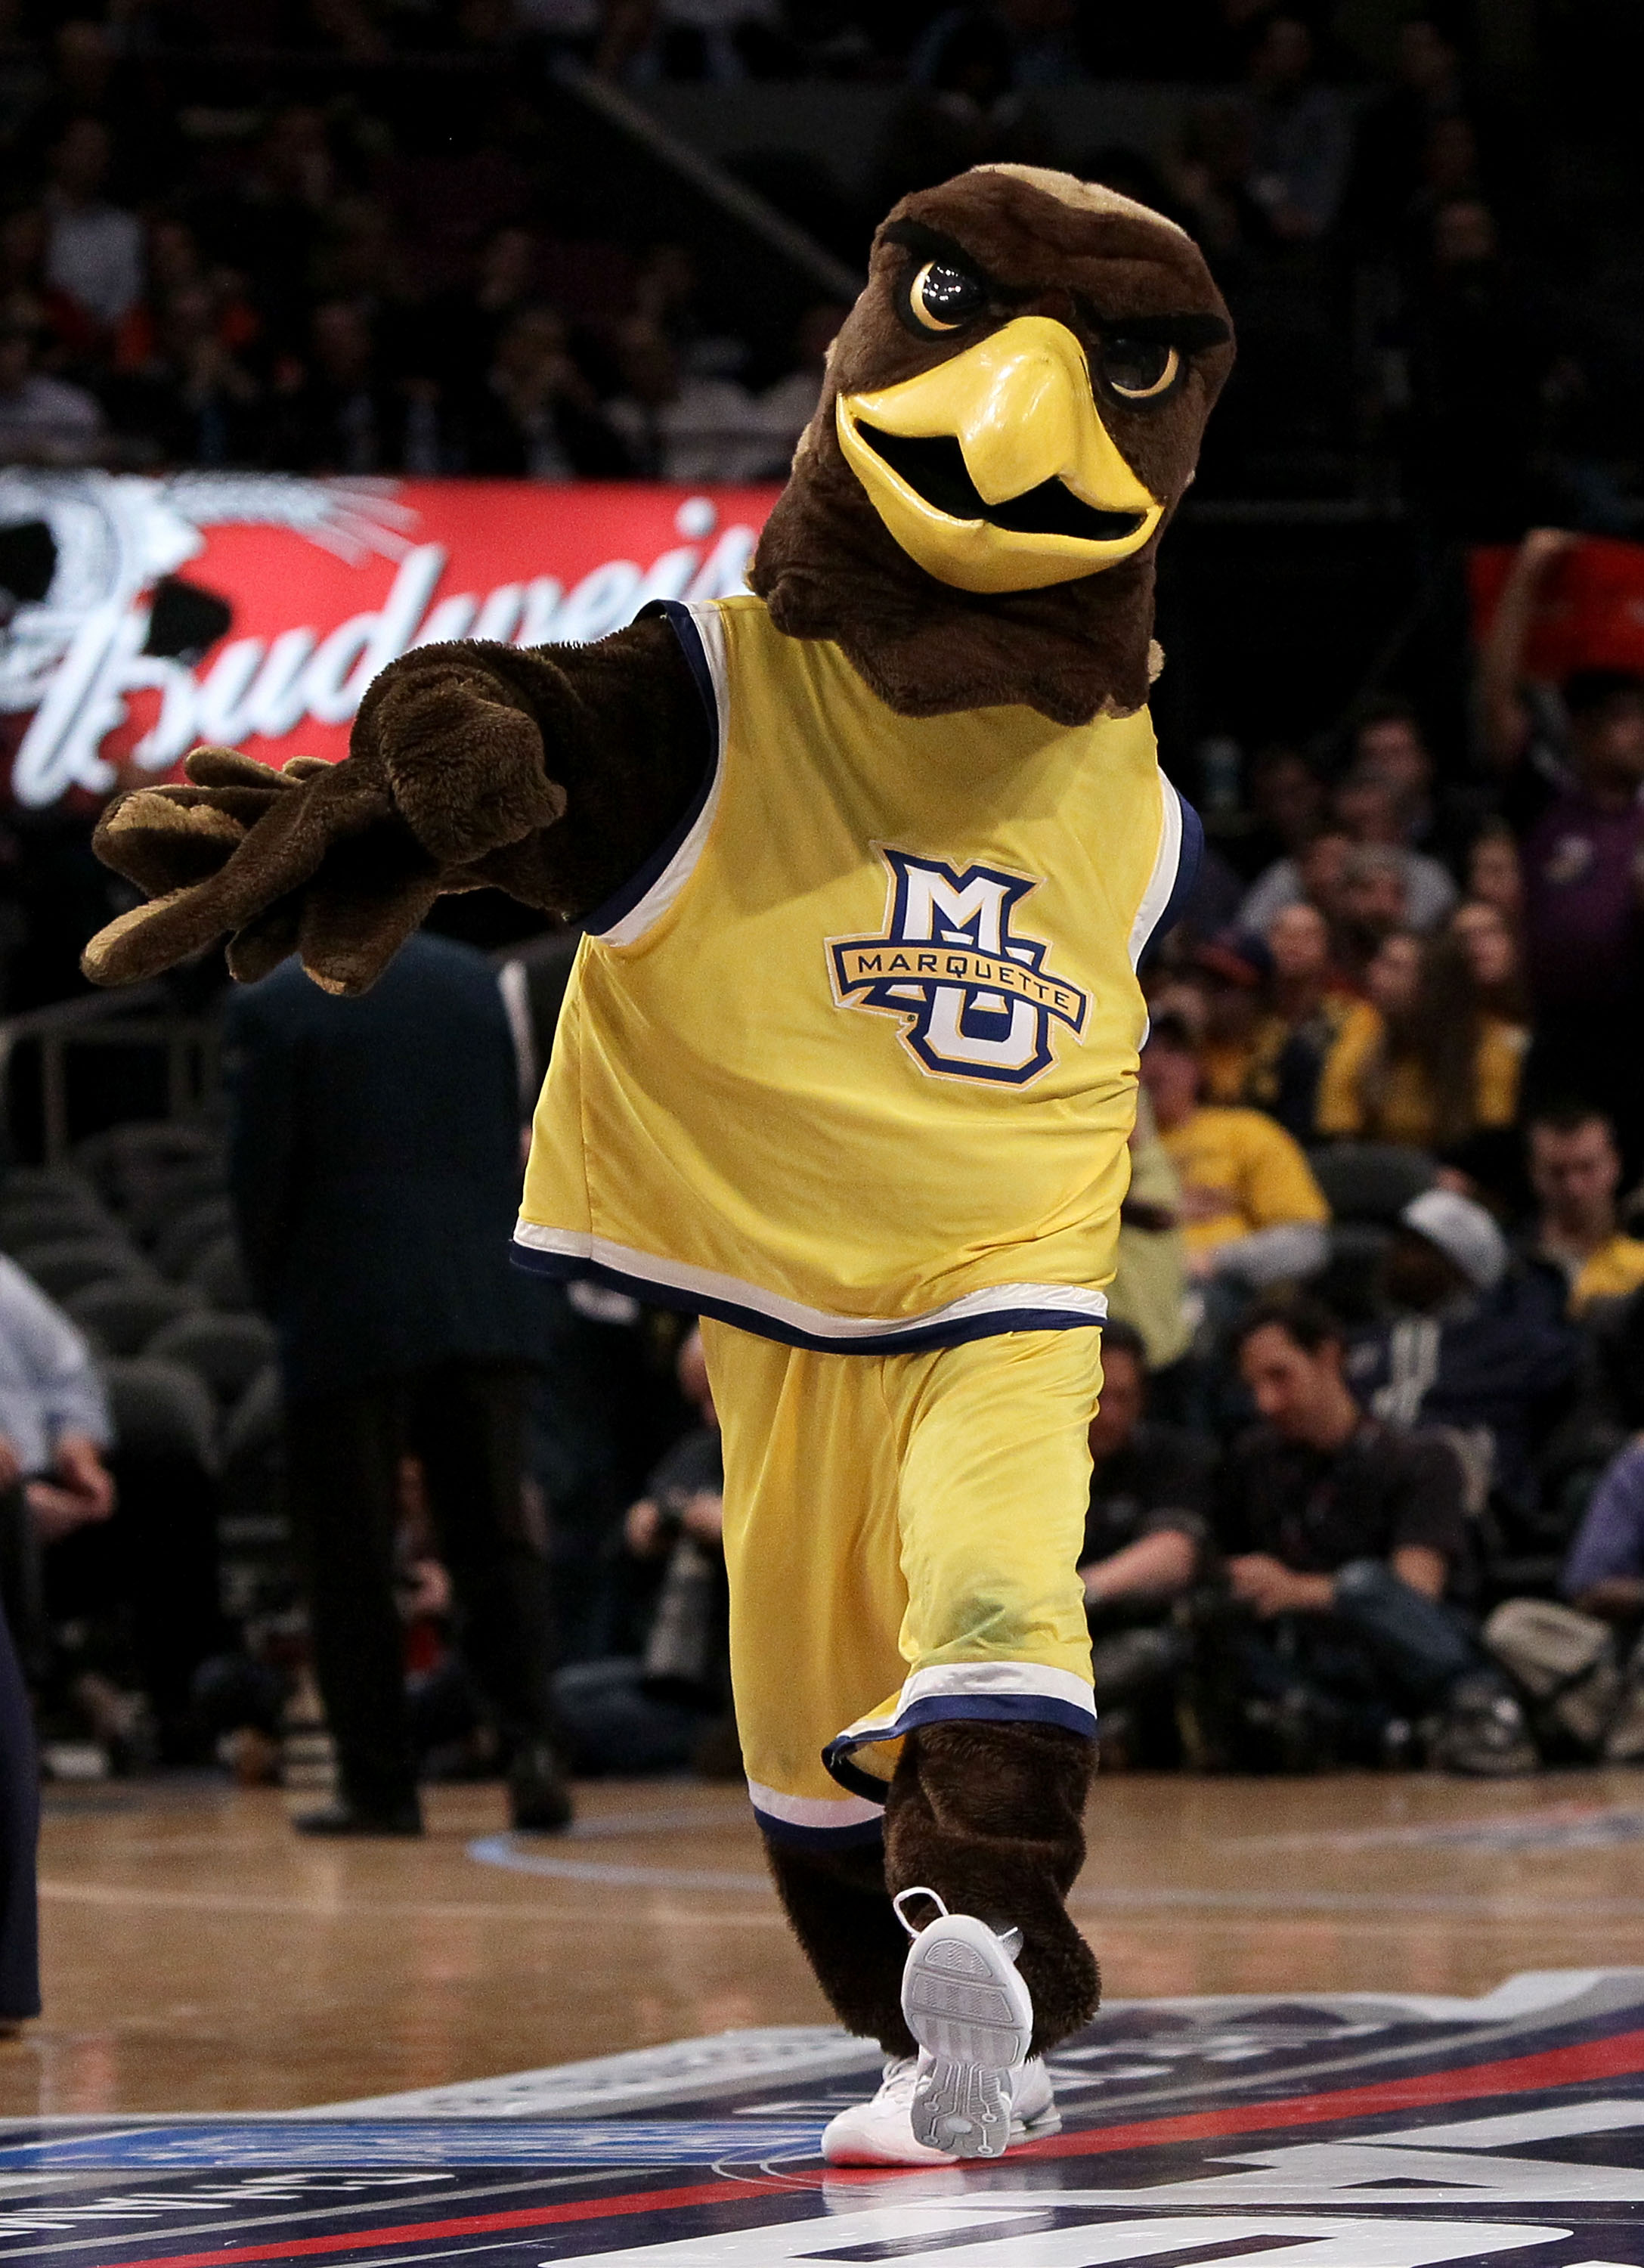 NEW YORK - MARCH 12: The Marquette Golden Eagles mascot walks on the court against the Georgetown Hoyas during the semifinal of the 2010 Big East Tournament at Madison Square Garden on March 12, 2010 in New York City.  (Photo by Jim McIsaac/Getty Images)